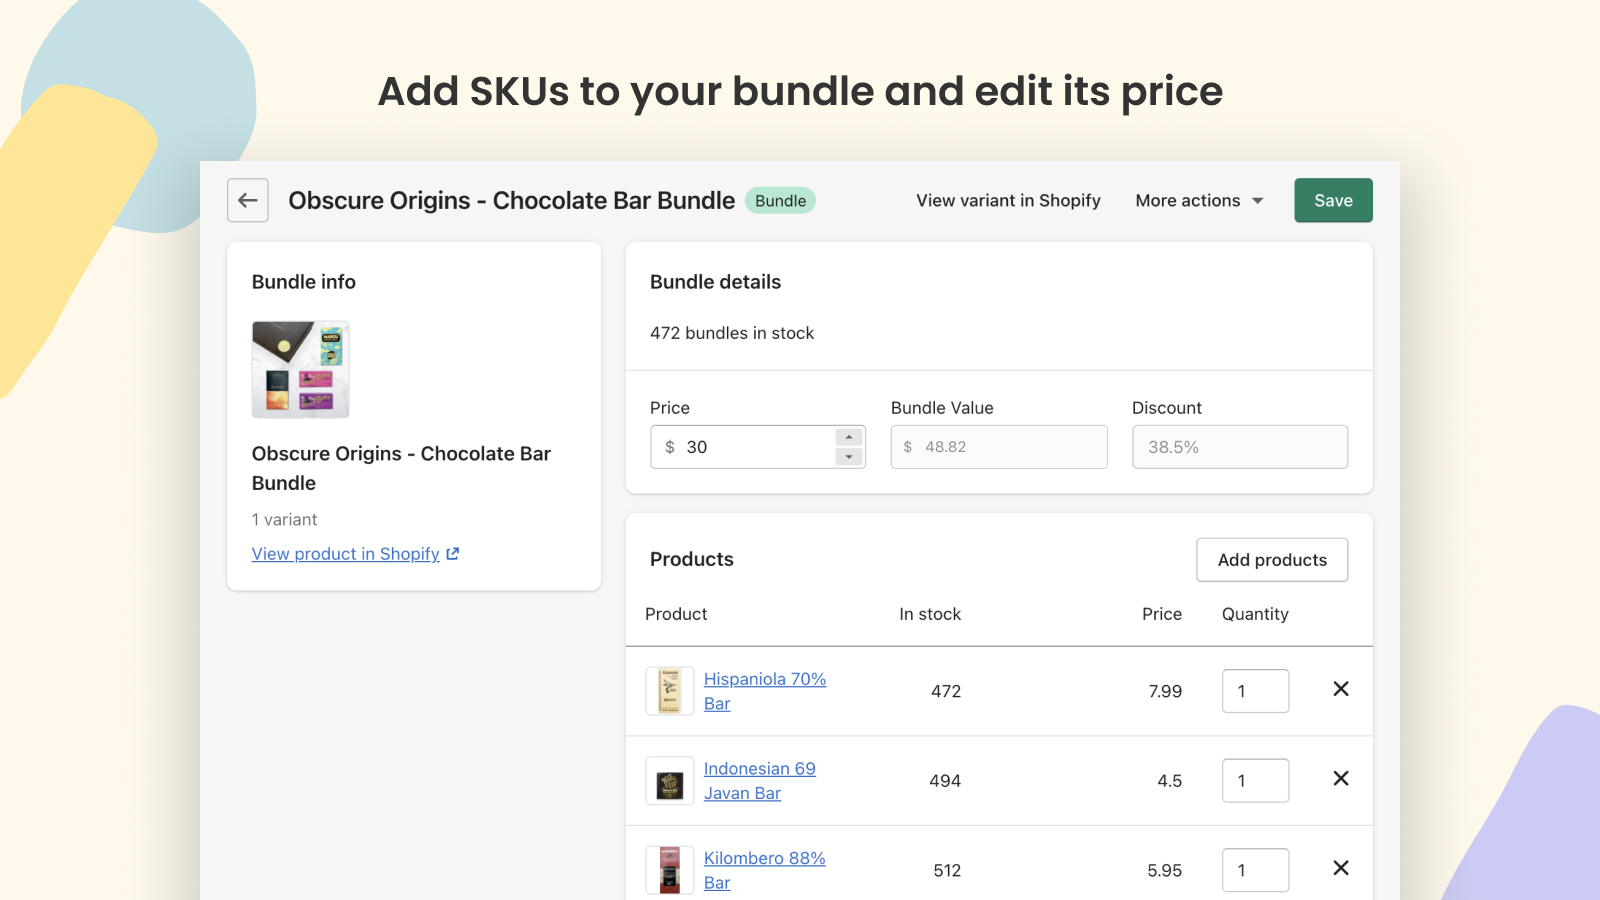 Add SKUs to your bundle and edit its price